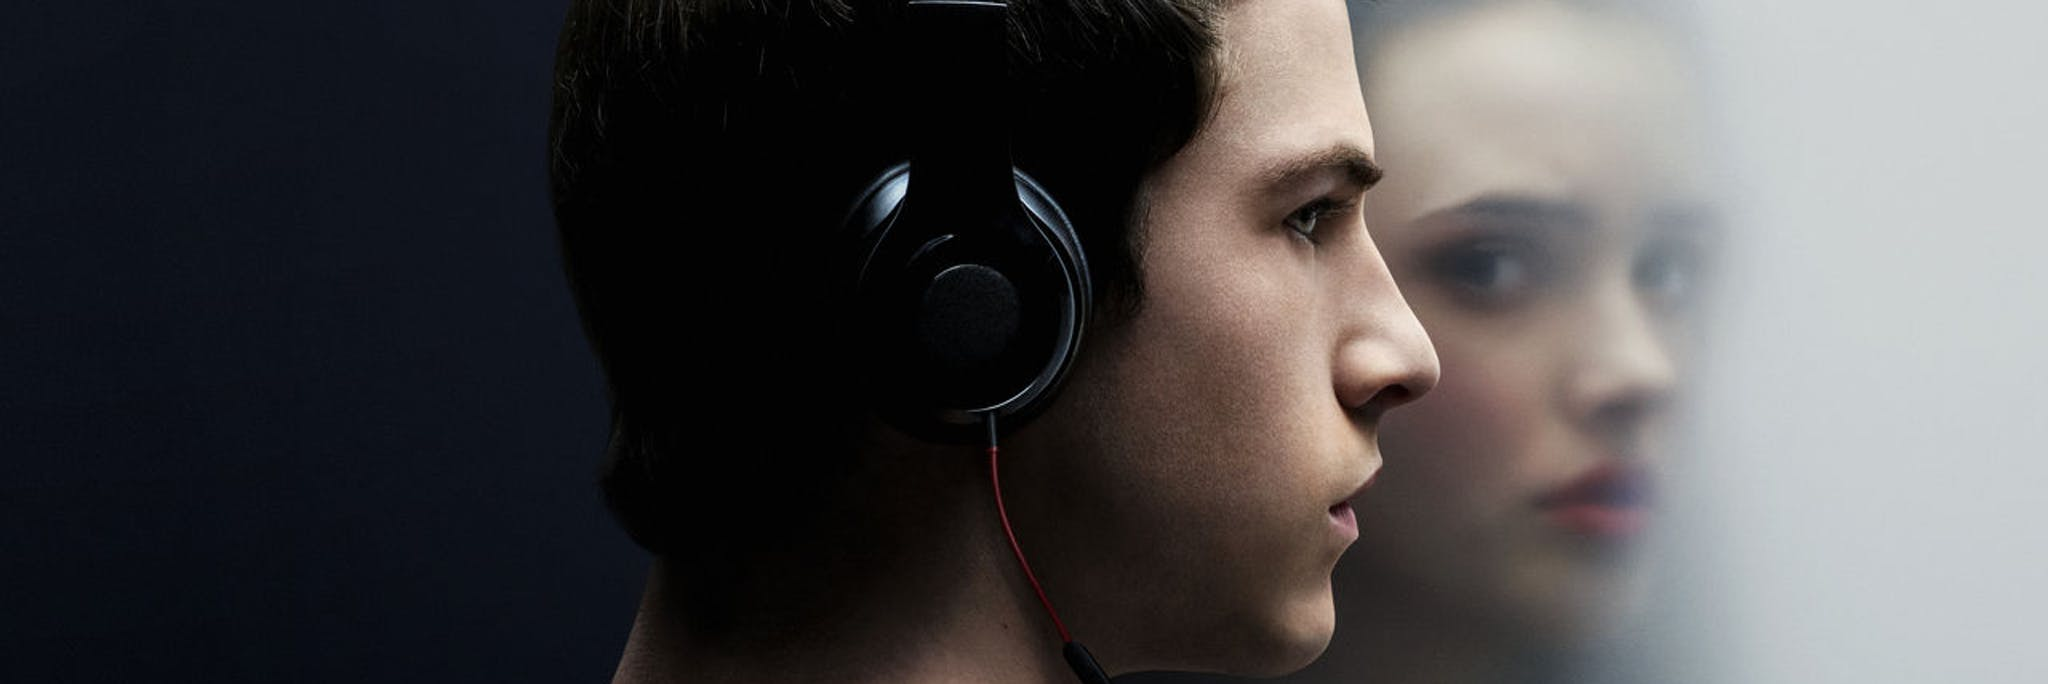 13 Reasons Why Not: The Project That Glorifies Life, Not Death